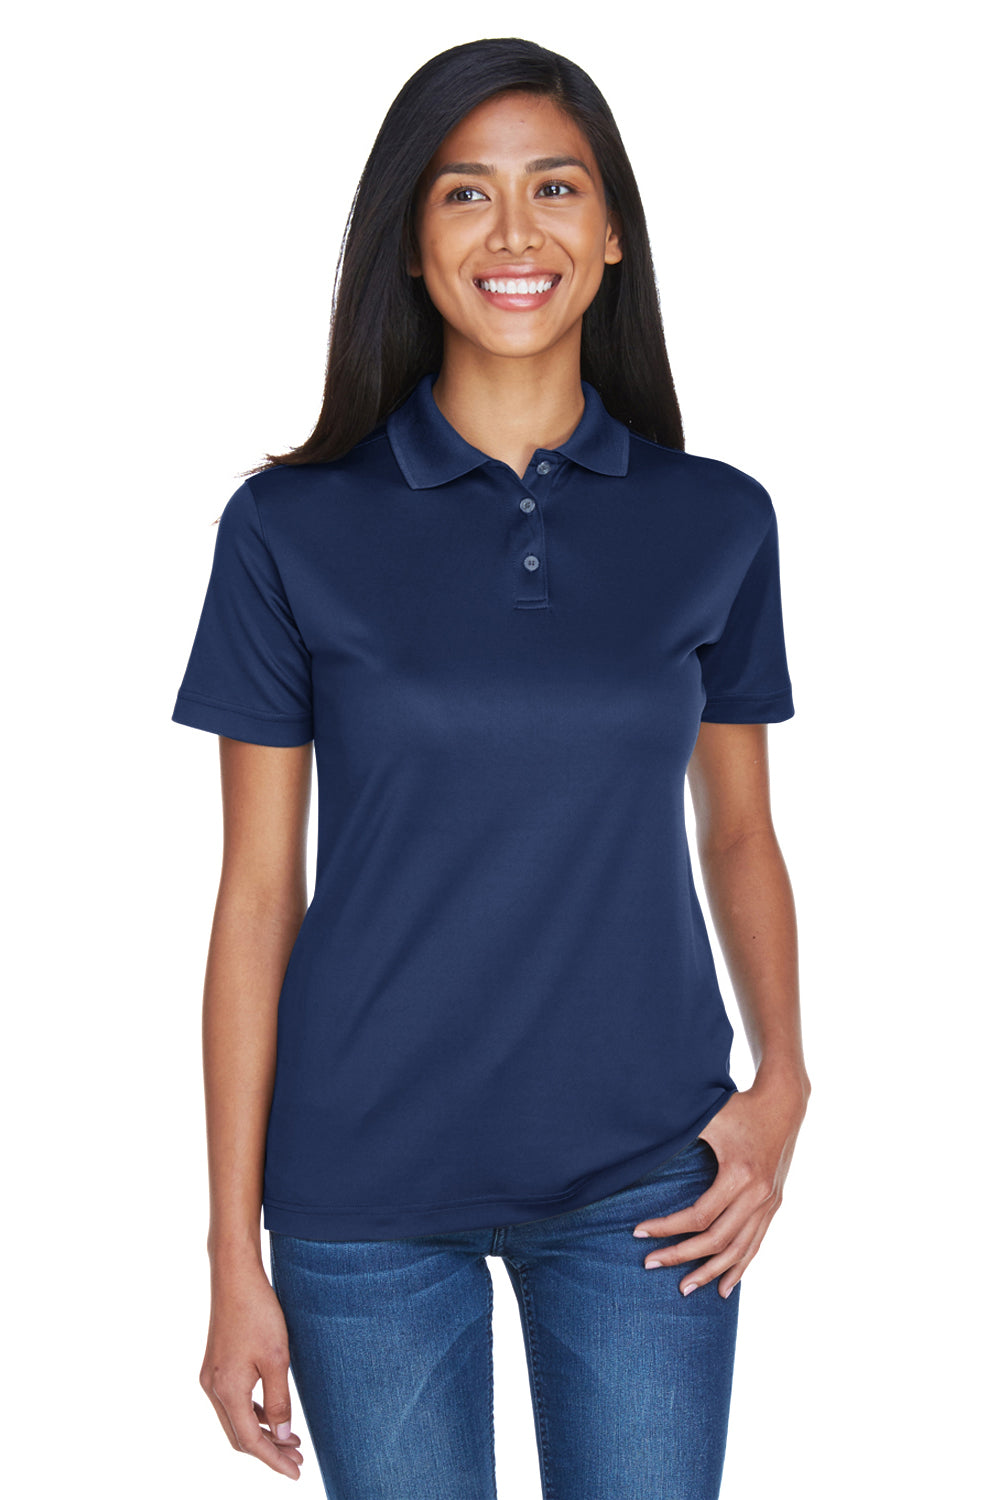 UltraClub 8404 Womens Cool & Dry Moisture Wicking Short Sleeve Polo Shirt Navy Blue Front